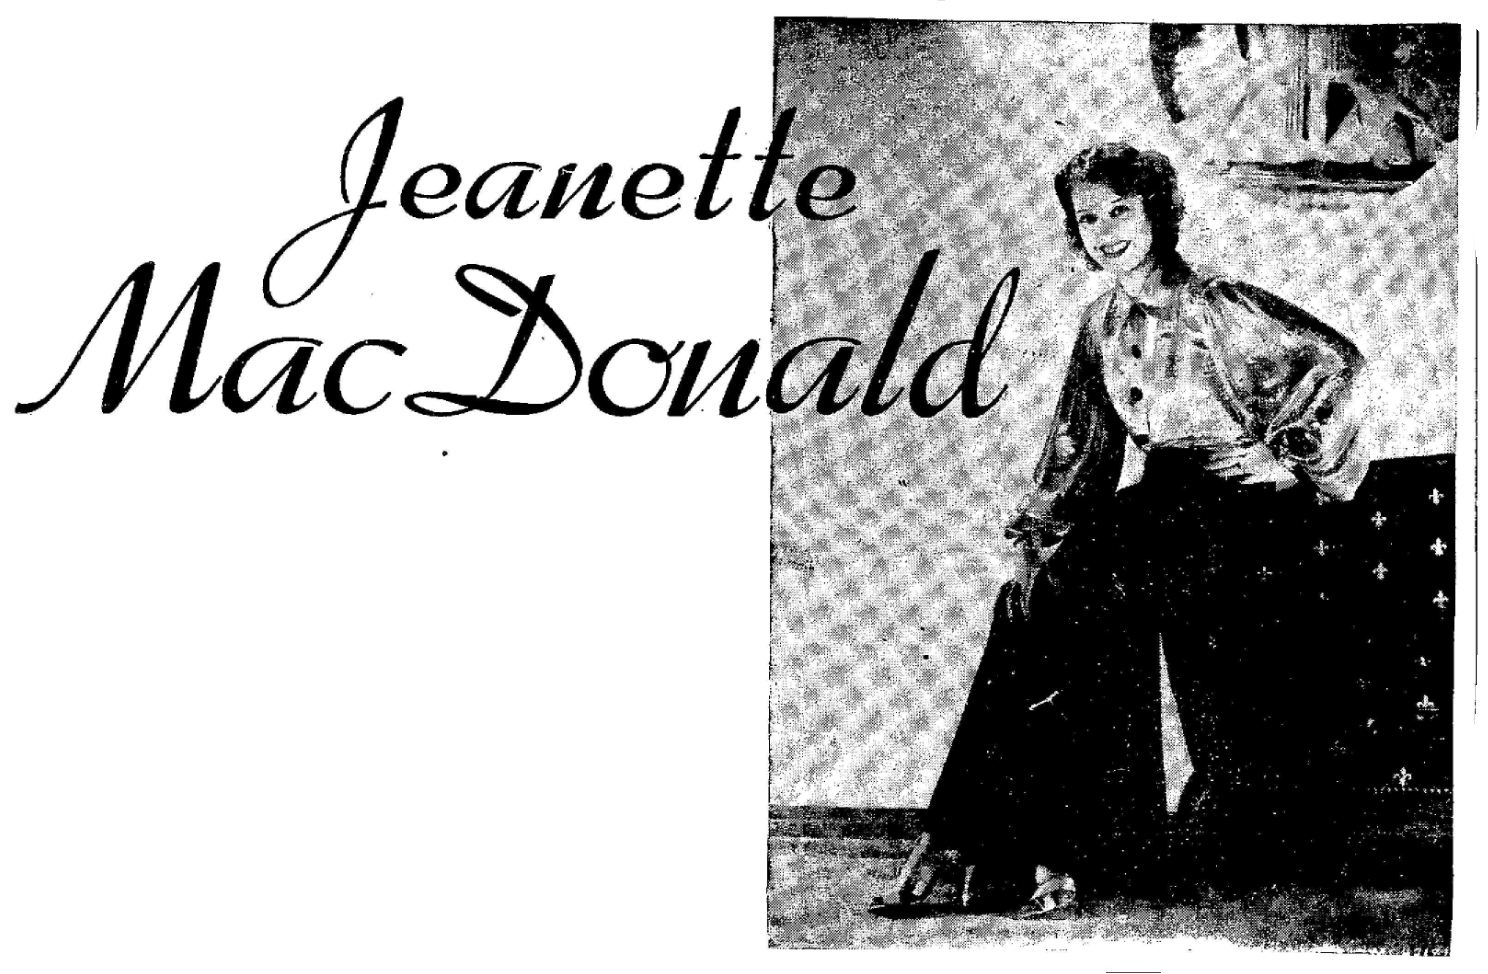 JEANETTE MAC DONALD was born in Philadelphia and as early as she was able to